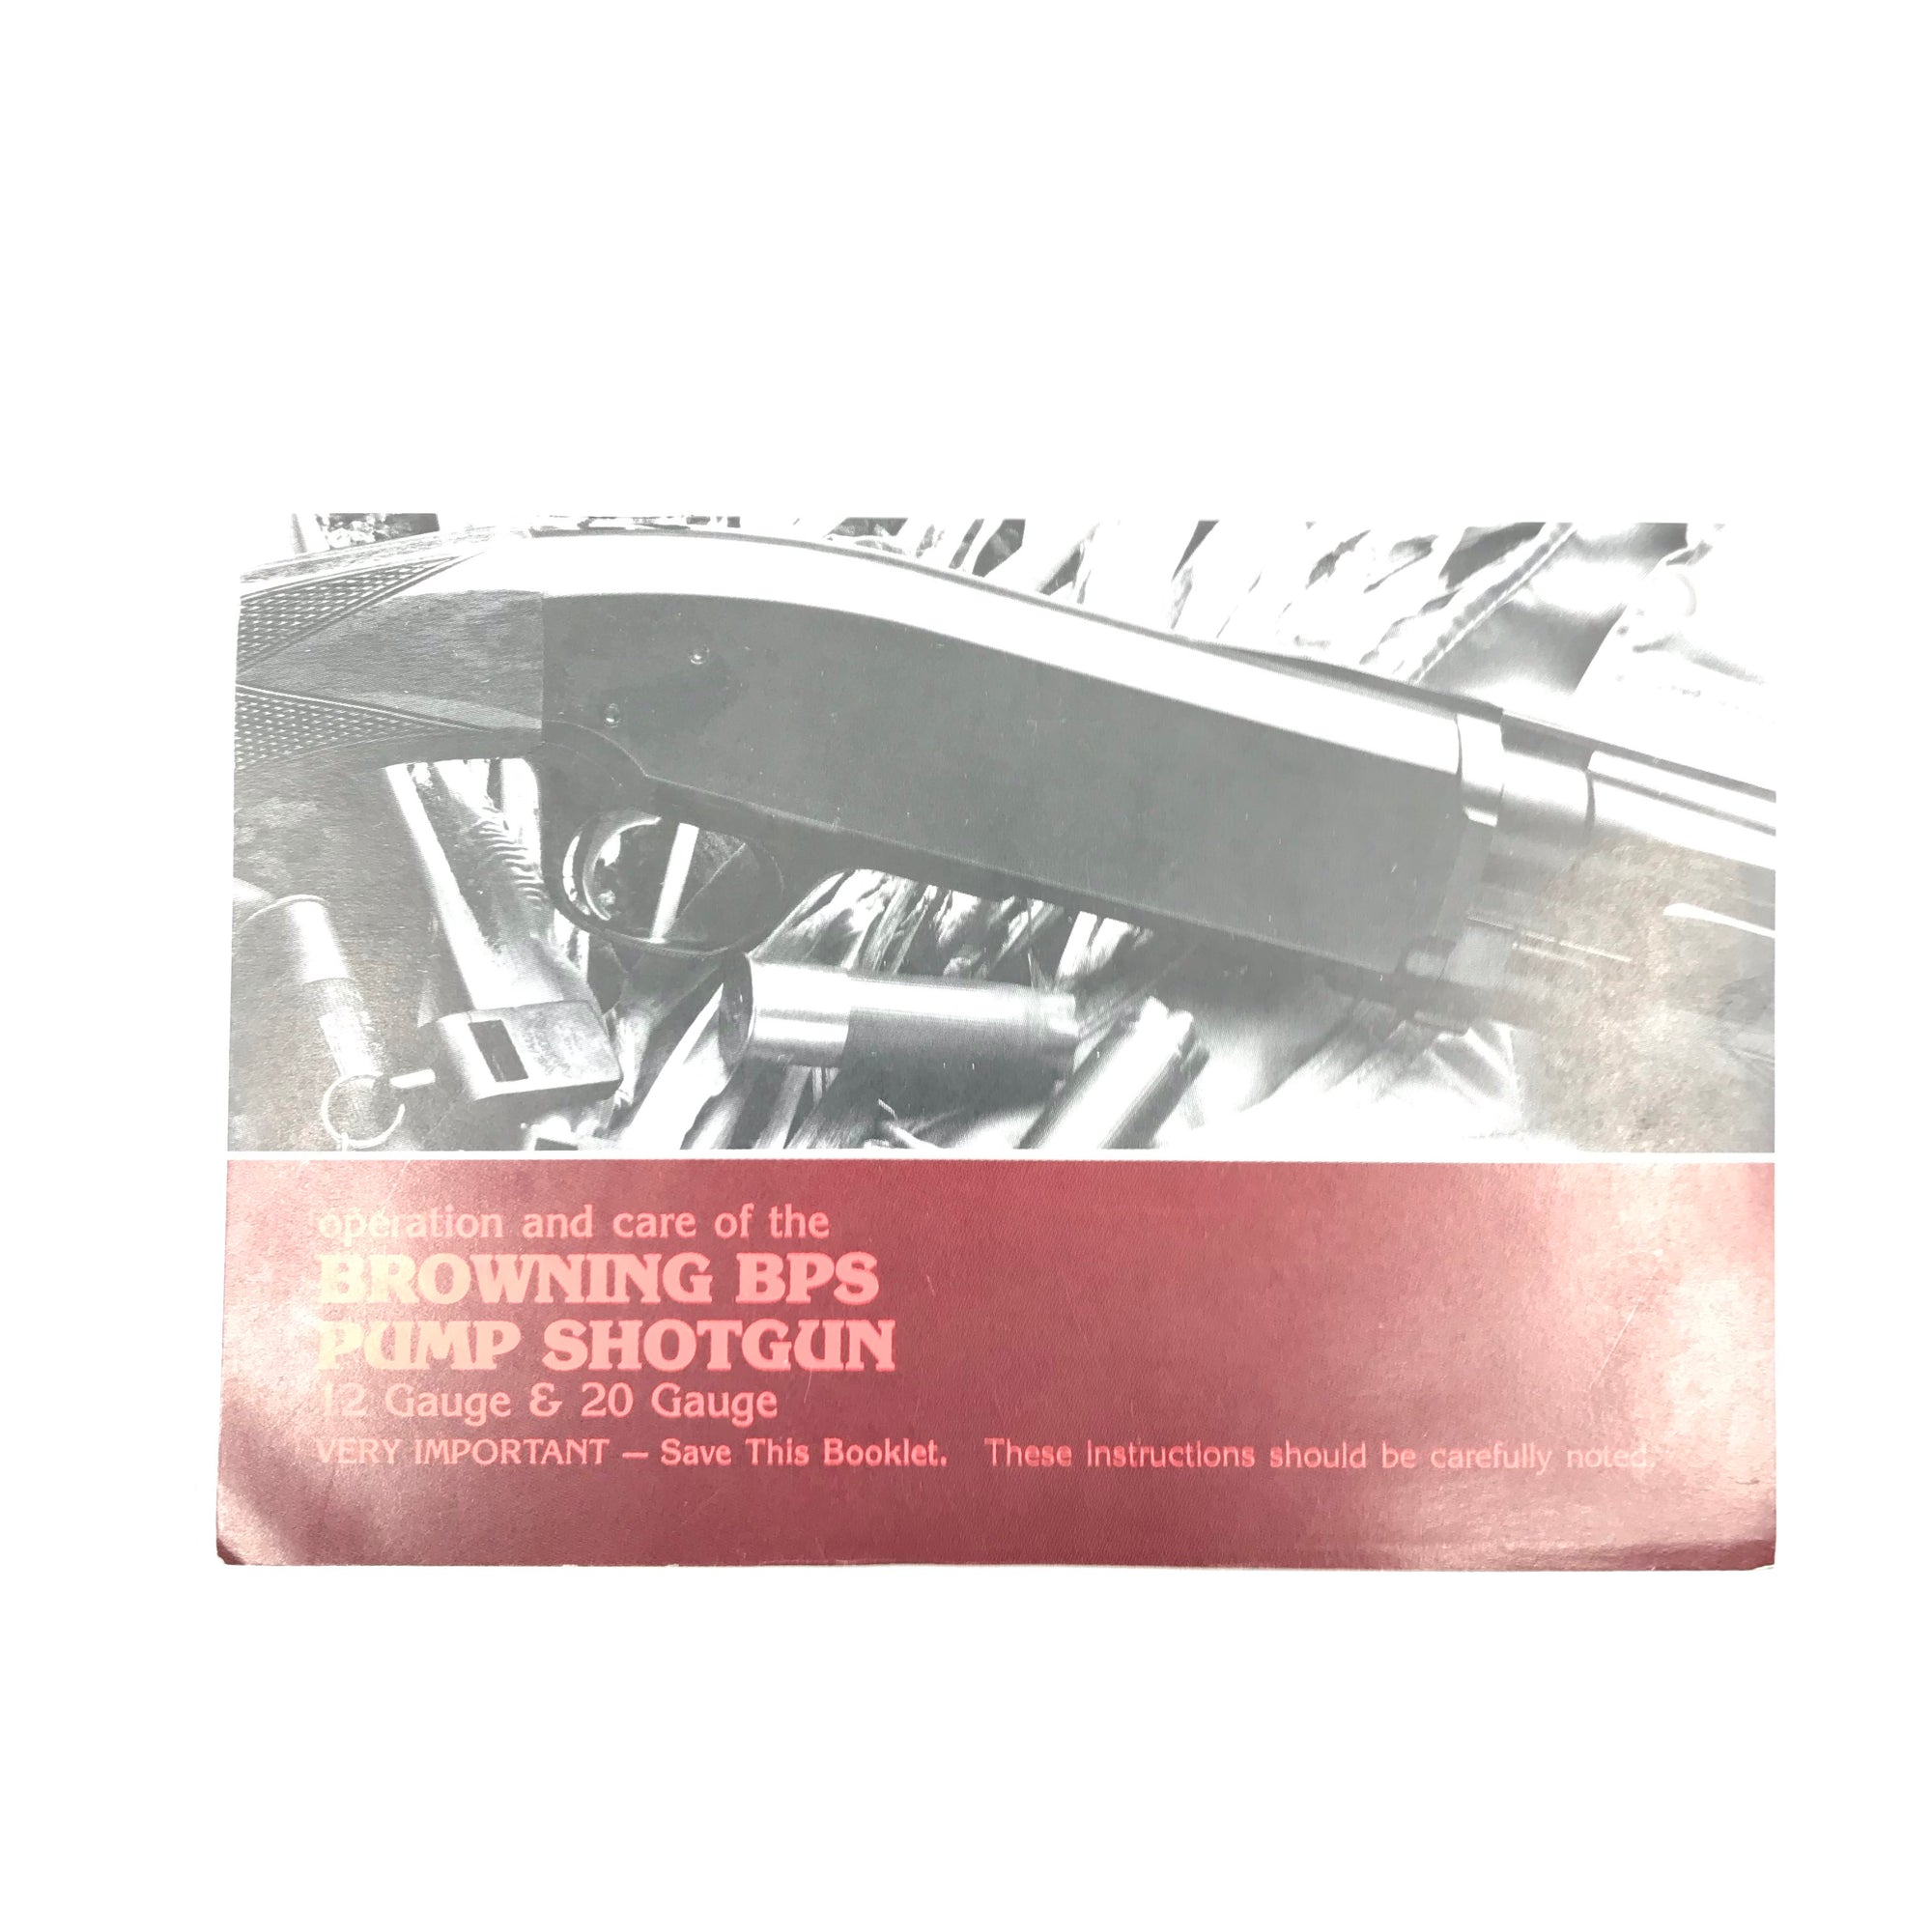 Browning BPS Pump Action Shotgun Manuals & Operation & Care Manual